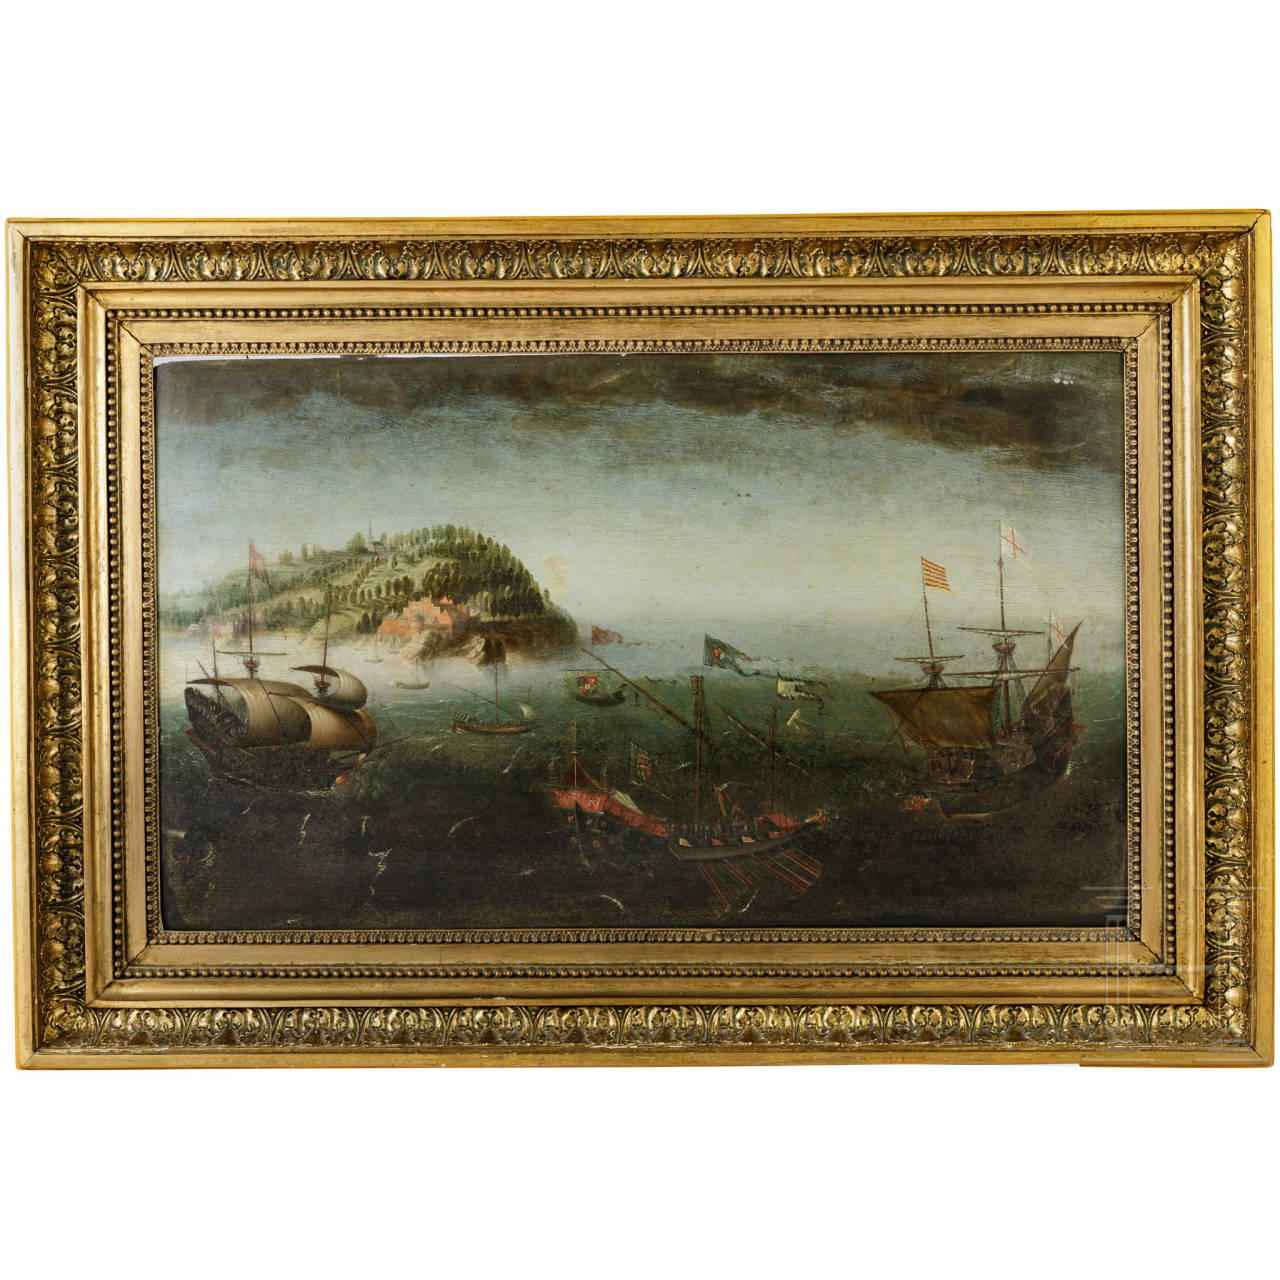 A painting Sea Battle, oil on wood, circa 1600